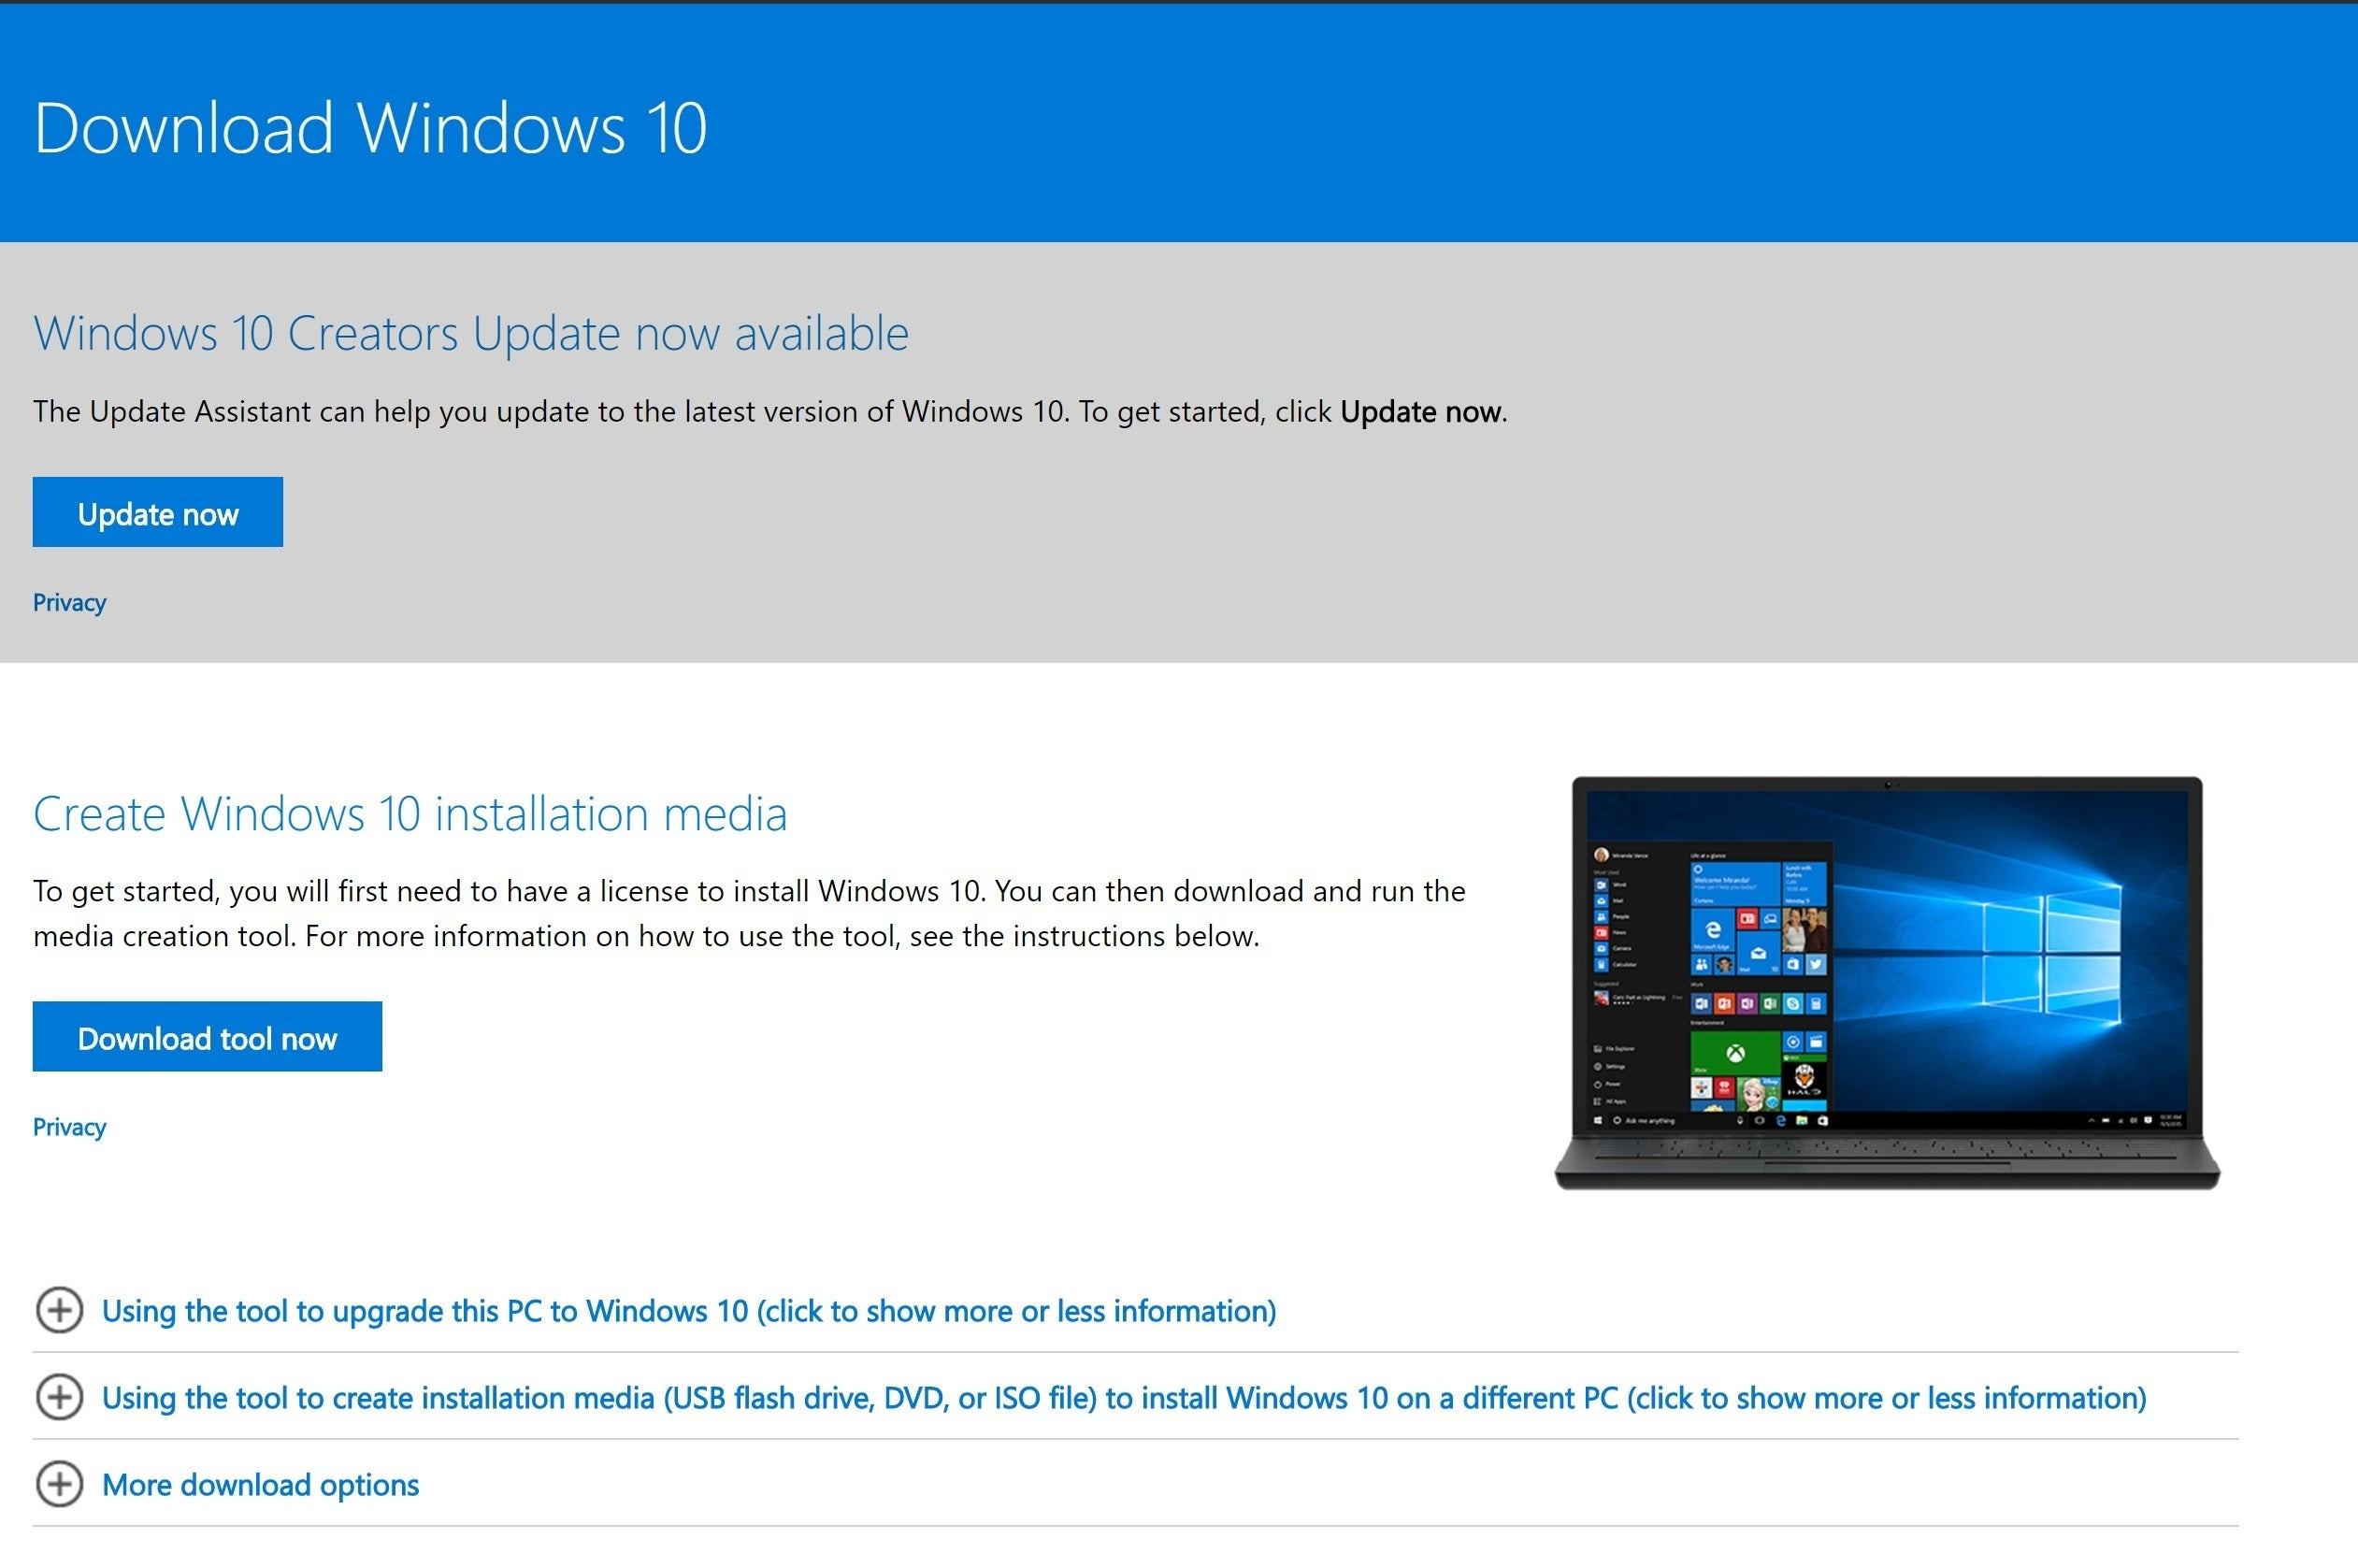 How to download a windows 10 iso file pcworld for Microsoft win10